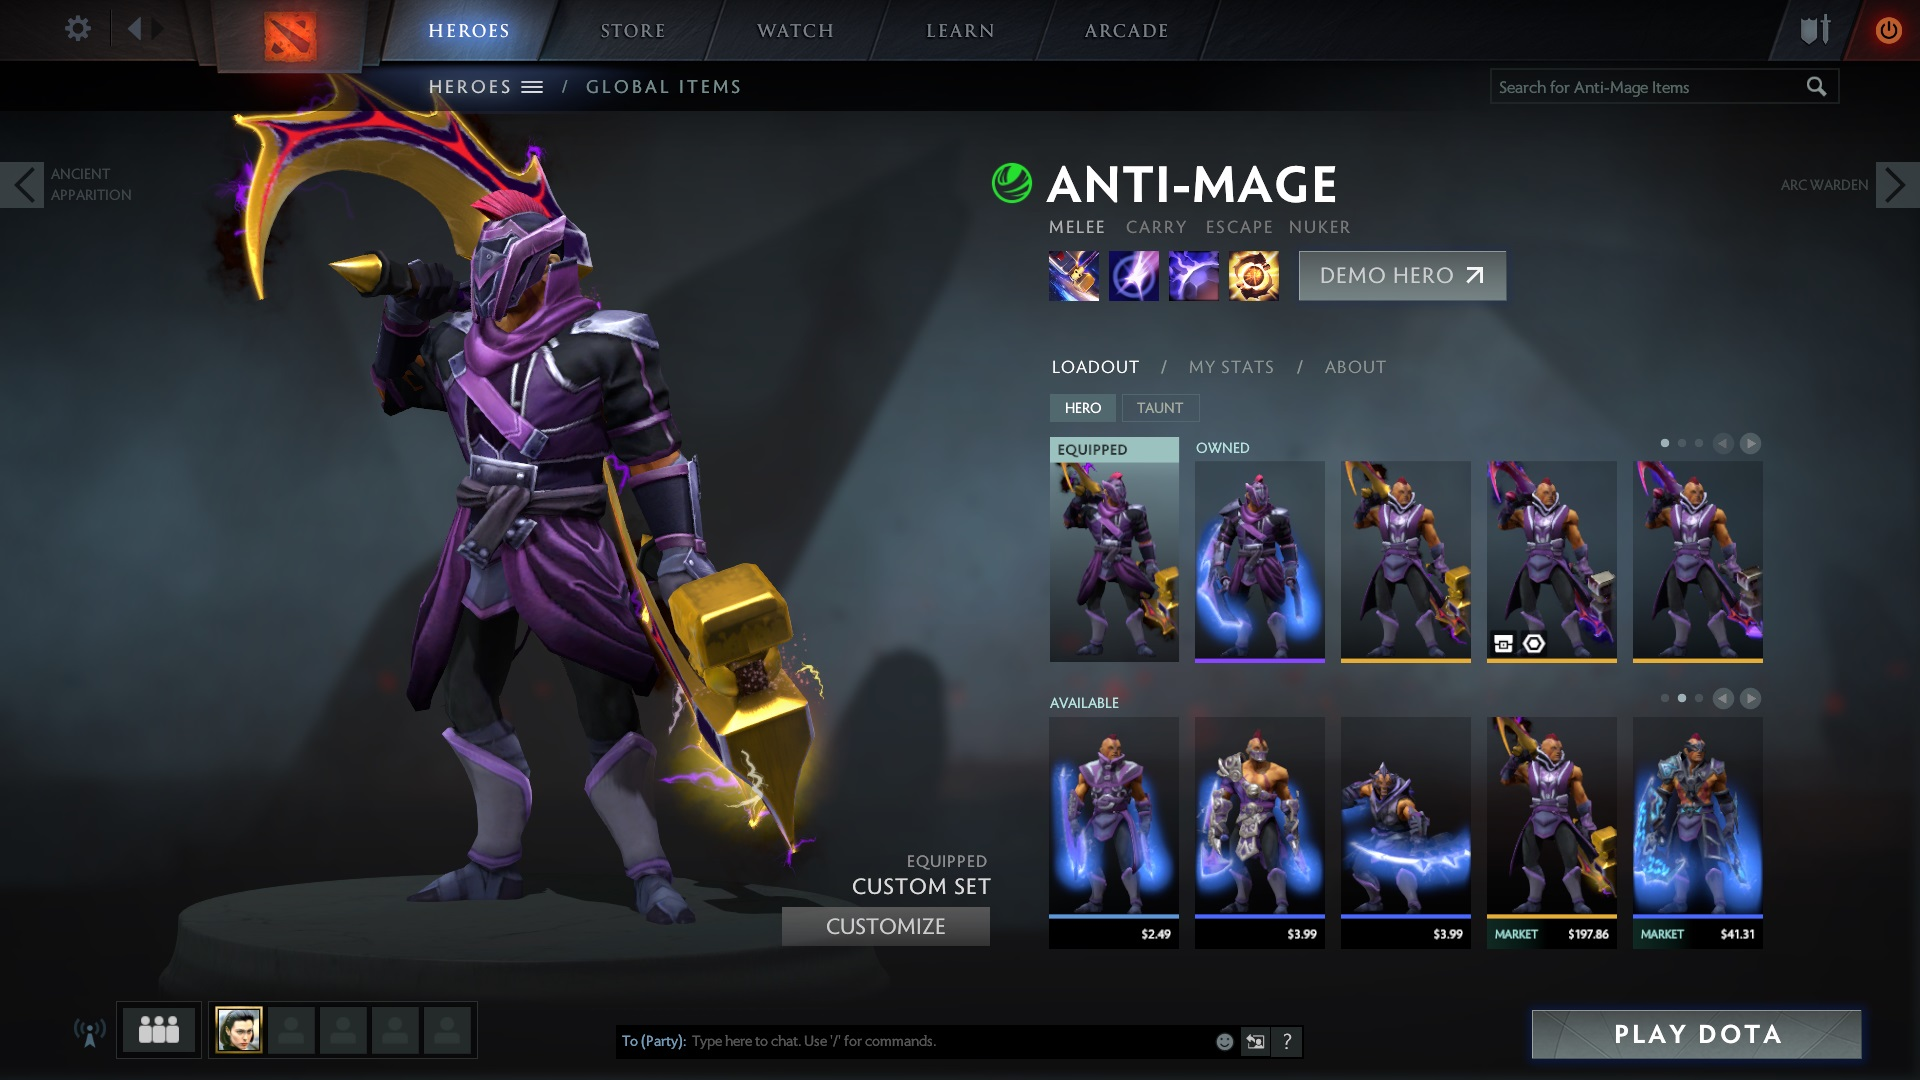 My Anti-Mage is wearing golden basher blades; these would cost nearly $200 to buy in the market, due to their rarity and desirability.